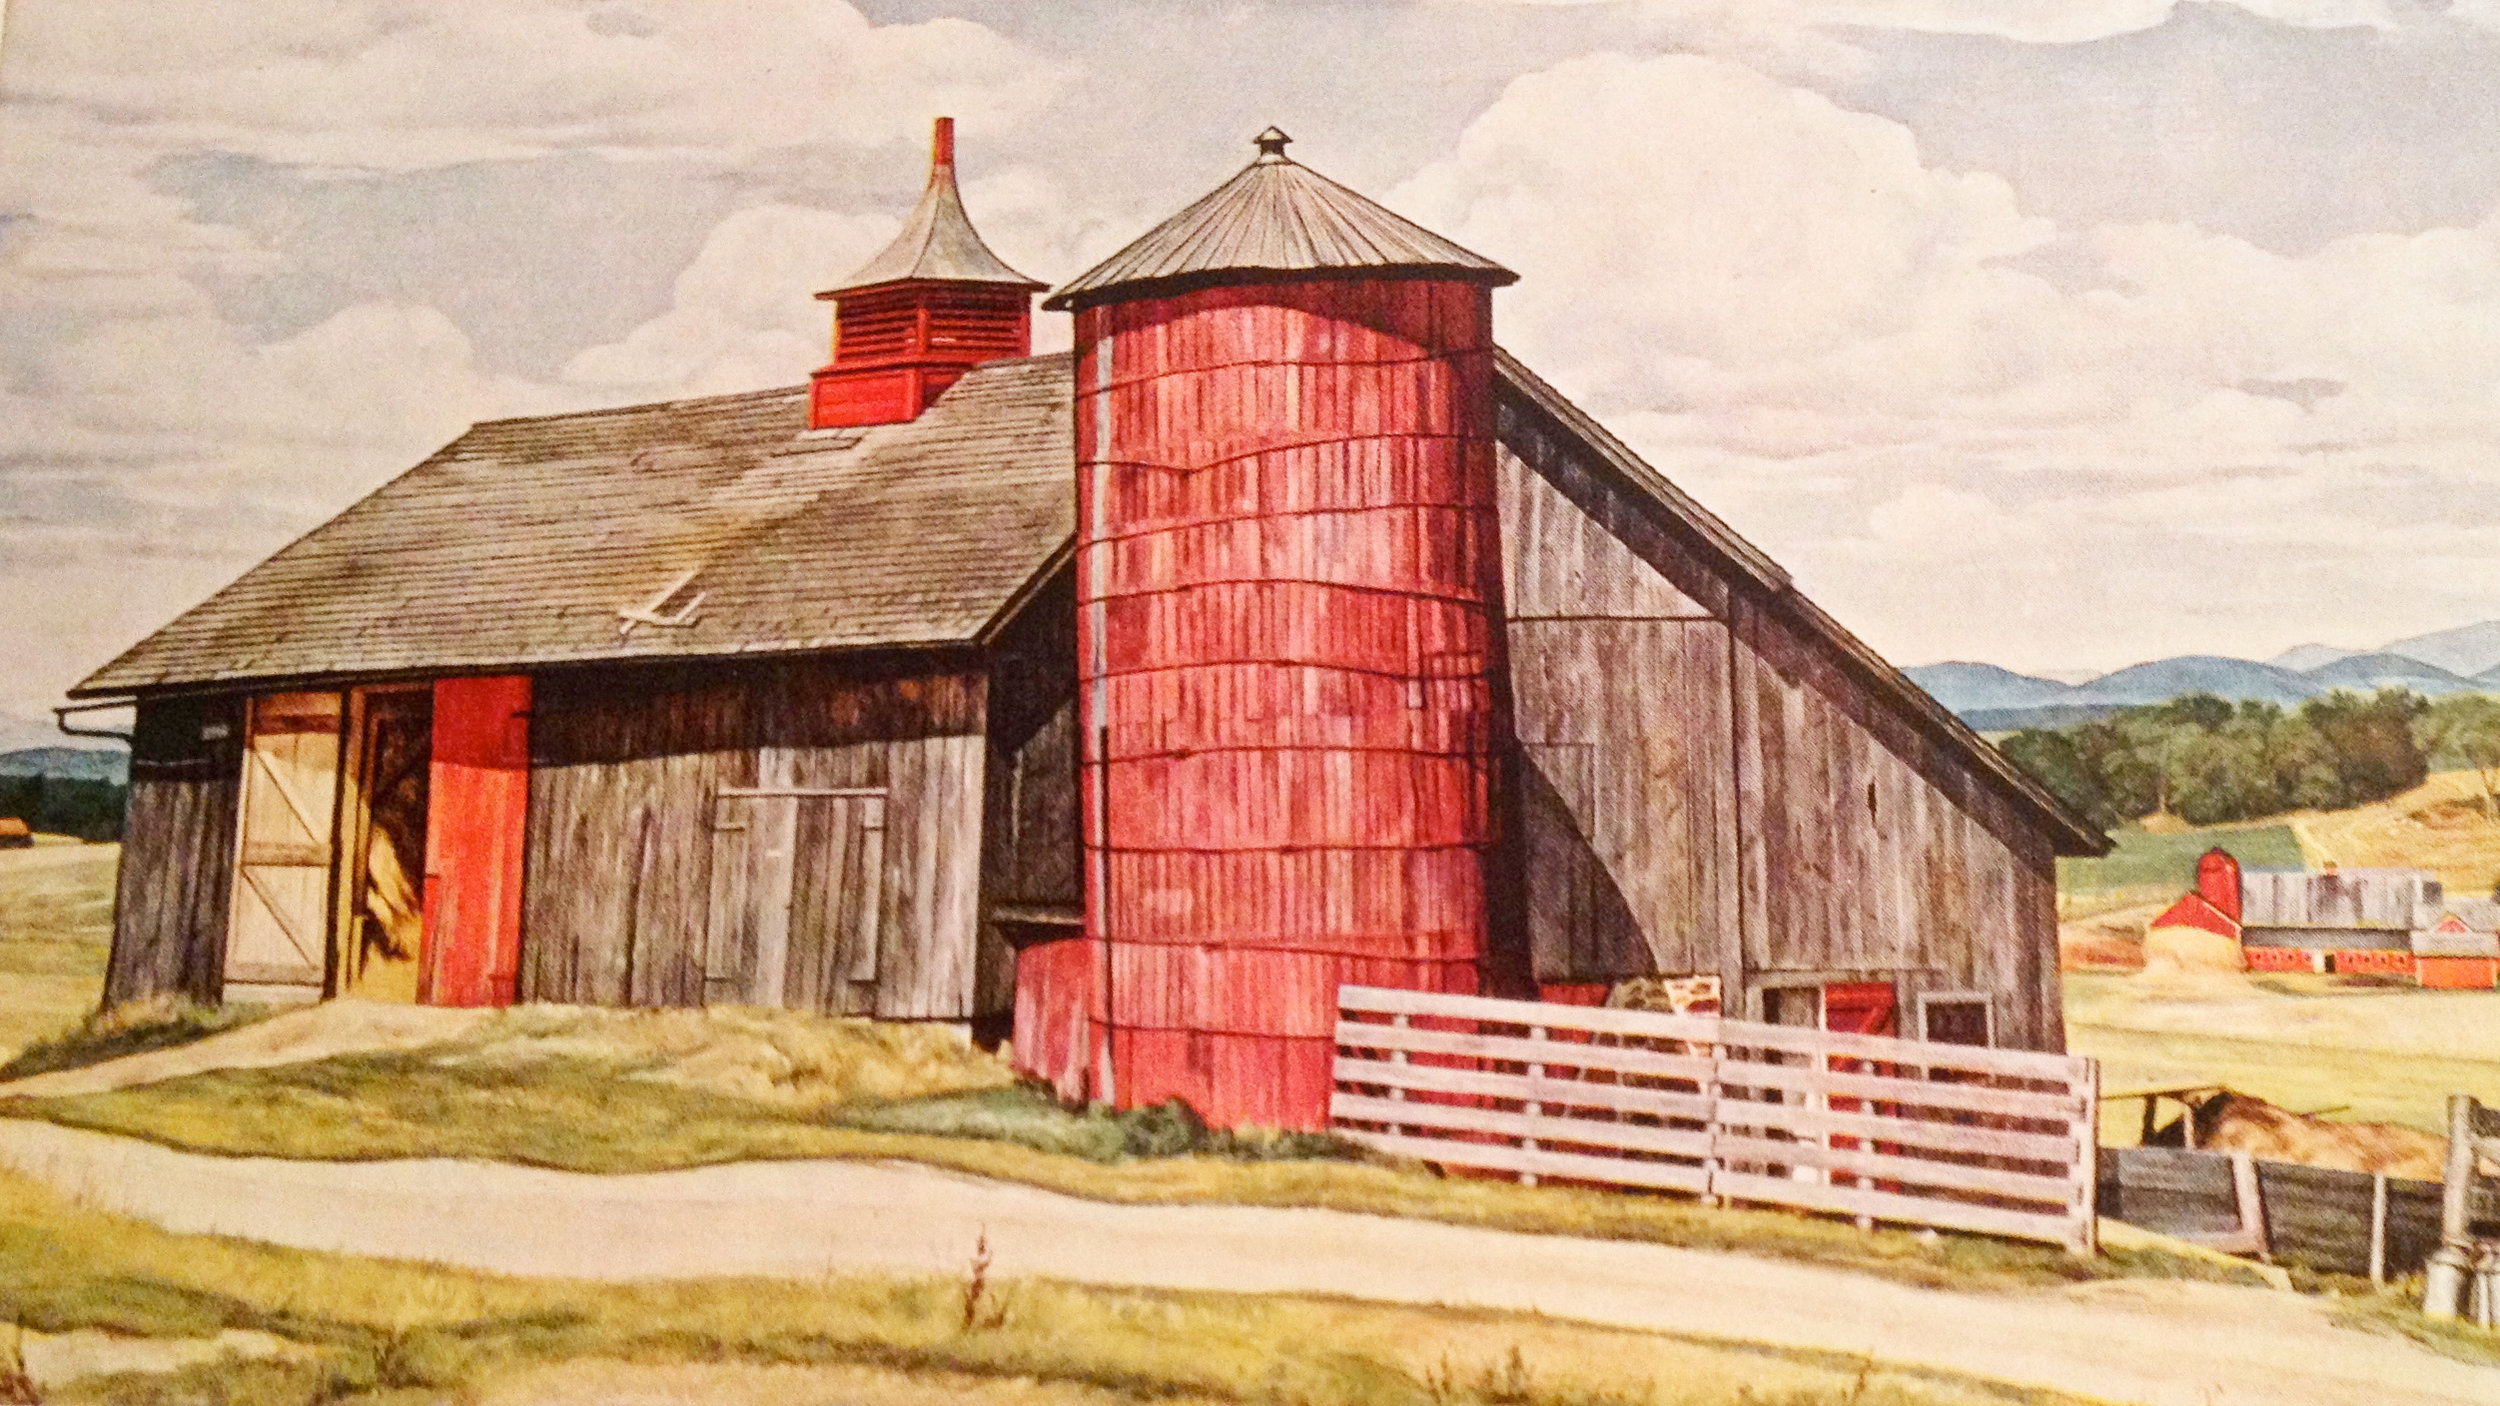 """Luigi Lucioni was an Italian-born American painter and printmaker who painted the """"Old Black Barn"""" in the mid-1900s. This barn (with a fresh coat of paint) is now called the Sheep Barn and is still in use today."""